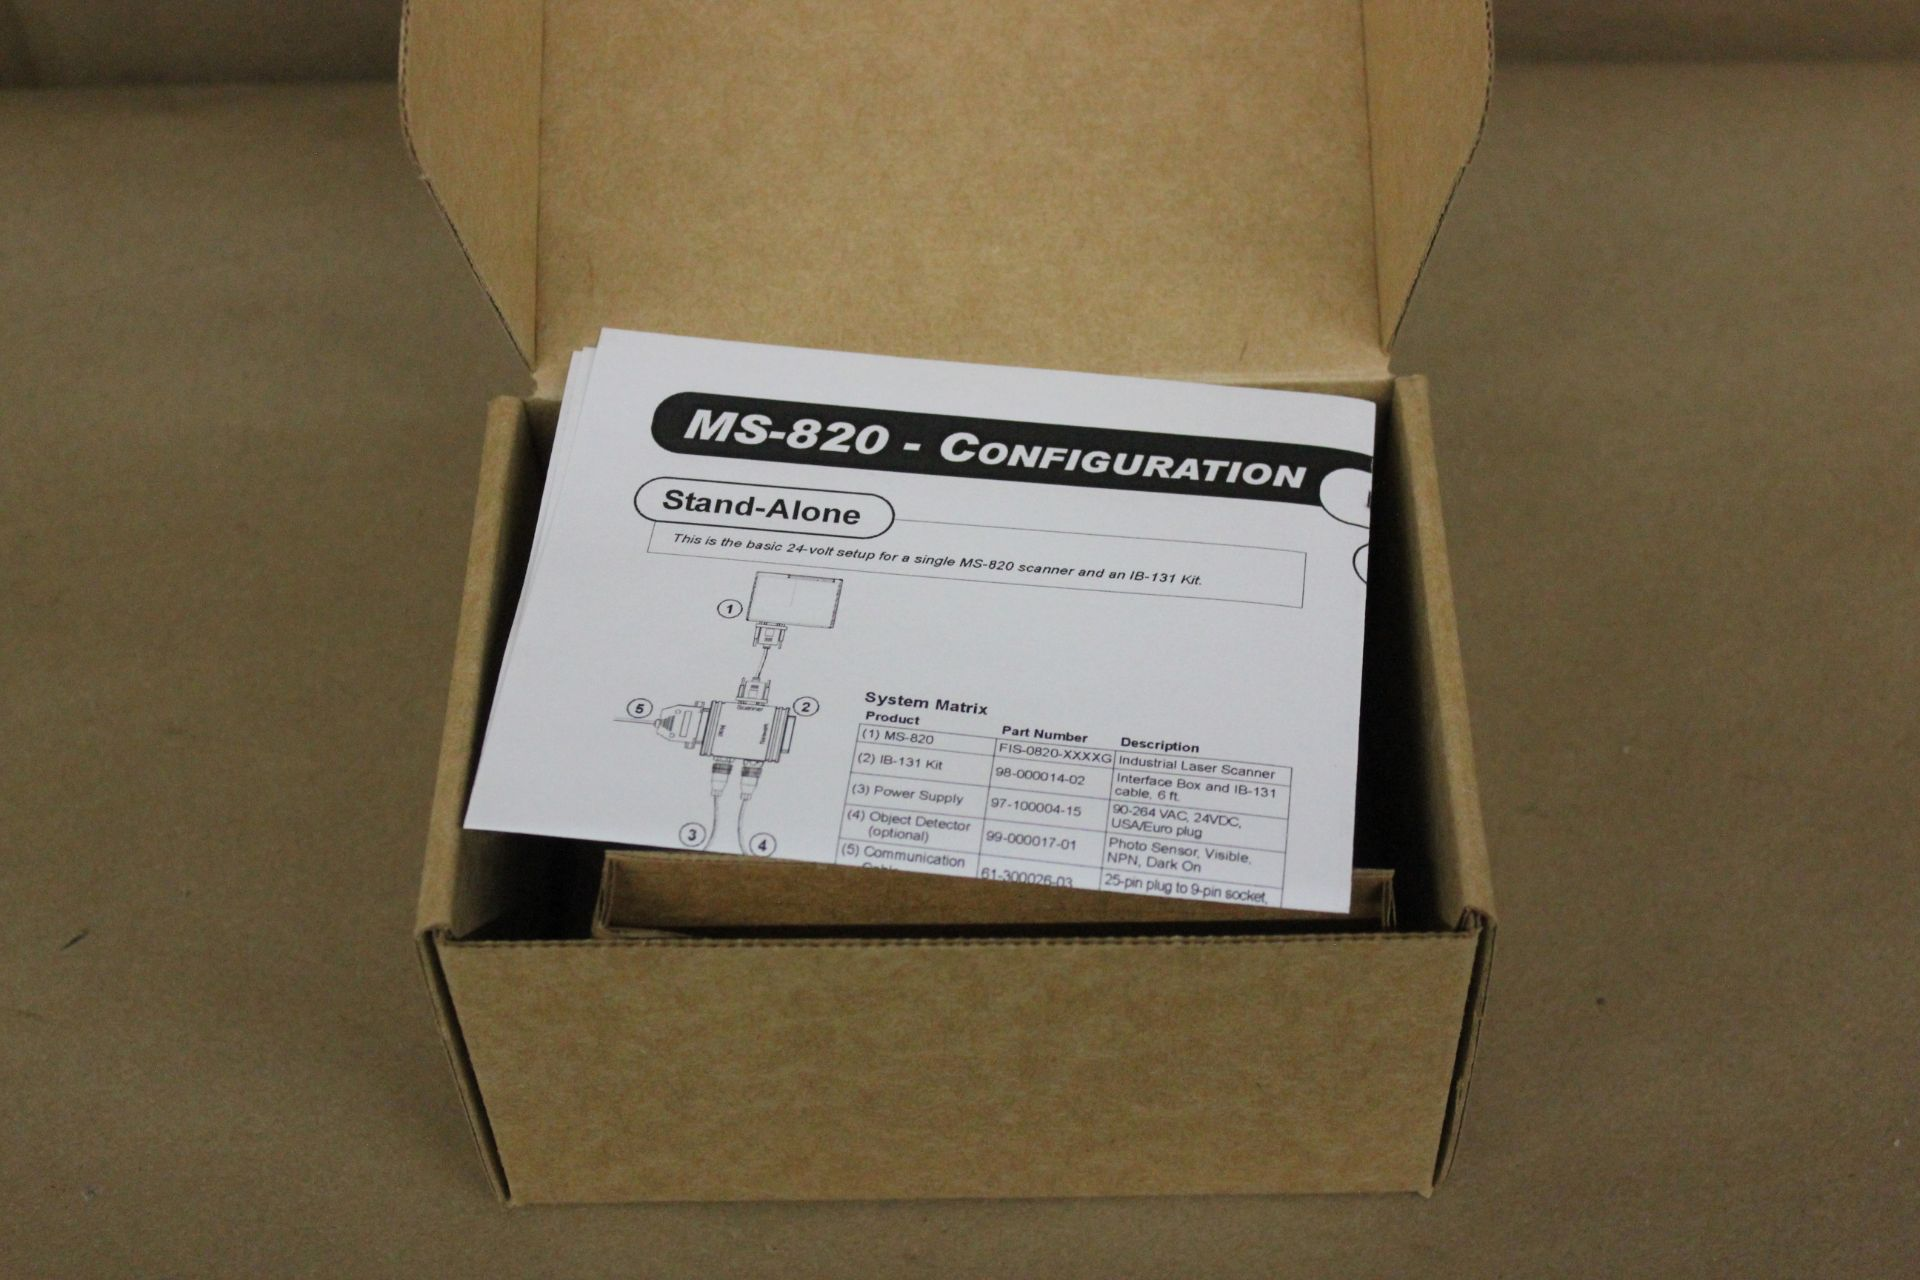 NEW MICROSCAN 820 INDUSTRIAL BARCODE SCANNER - Image 4 of 7